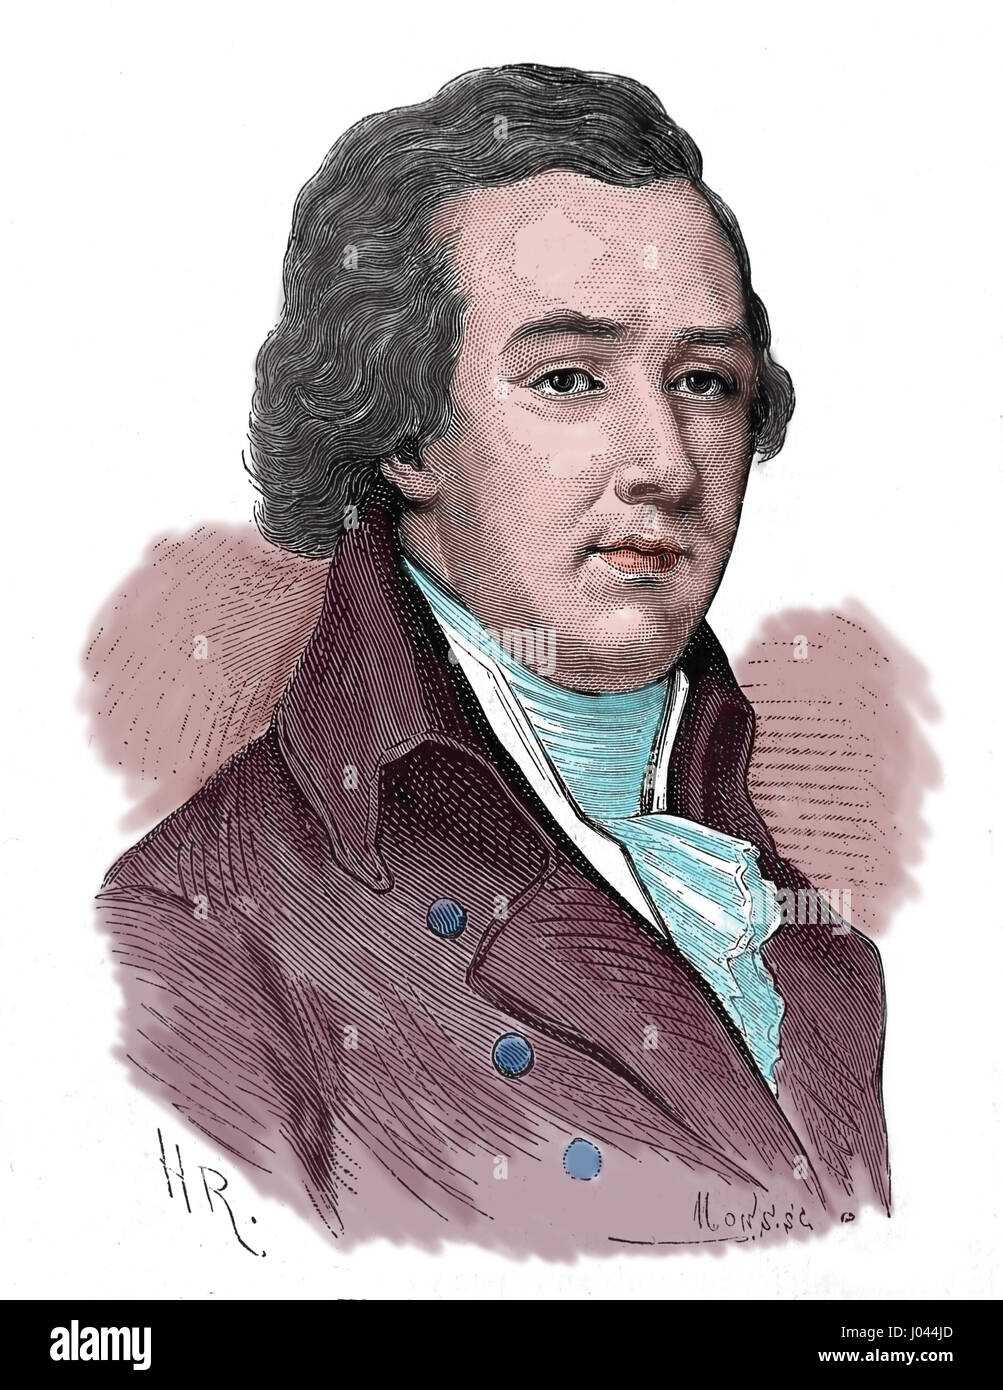 William Pitt the younger (1759-1806). British Prime Minister.  Engraving by Nuestro Siglo, 1883. Spanish edition - Stock Image